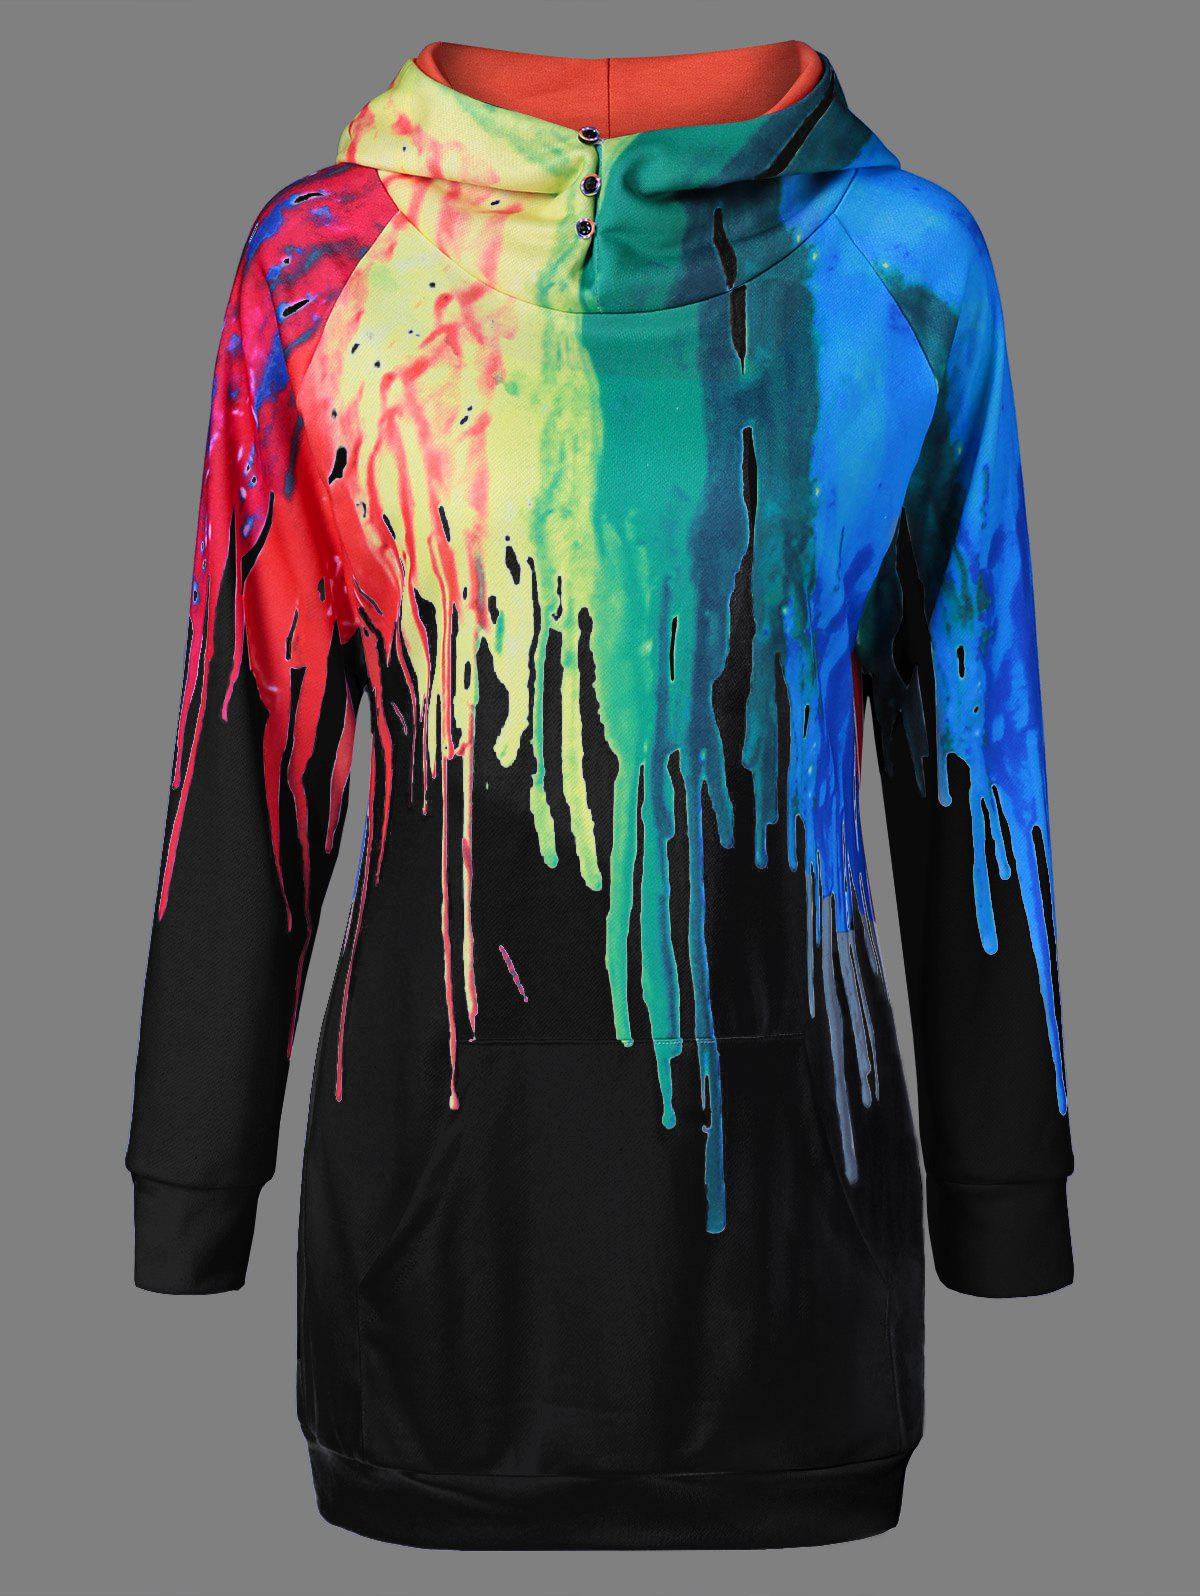 Oil Paint Over Print Rainbow HoodieWOMEN<br><br>Size: XL; Color: BLACK; Material: Polyester; Shirt Length: Long; Sleeve Length: Full; Style: Fashion; Pattern Style: Print; Season: Fall,Spring; Weight: 0.560kg; Package Contents: 1 x Hoodie;